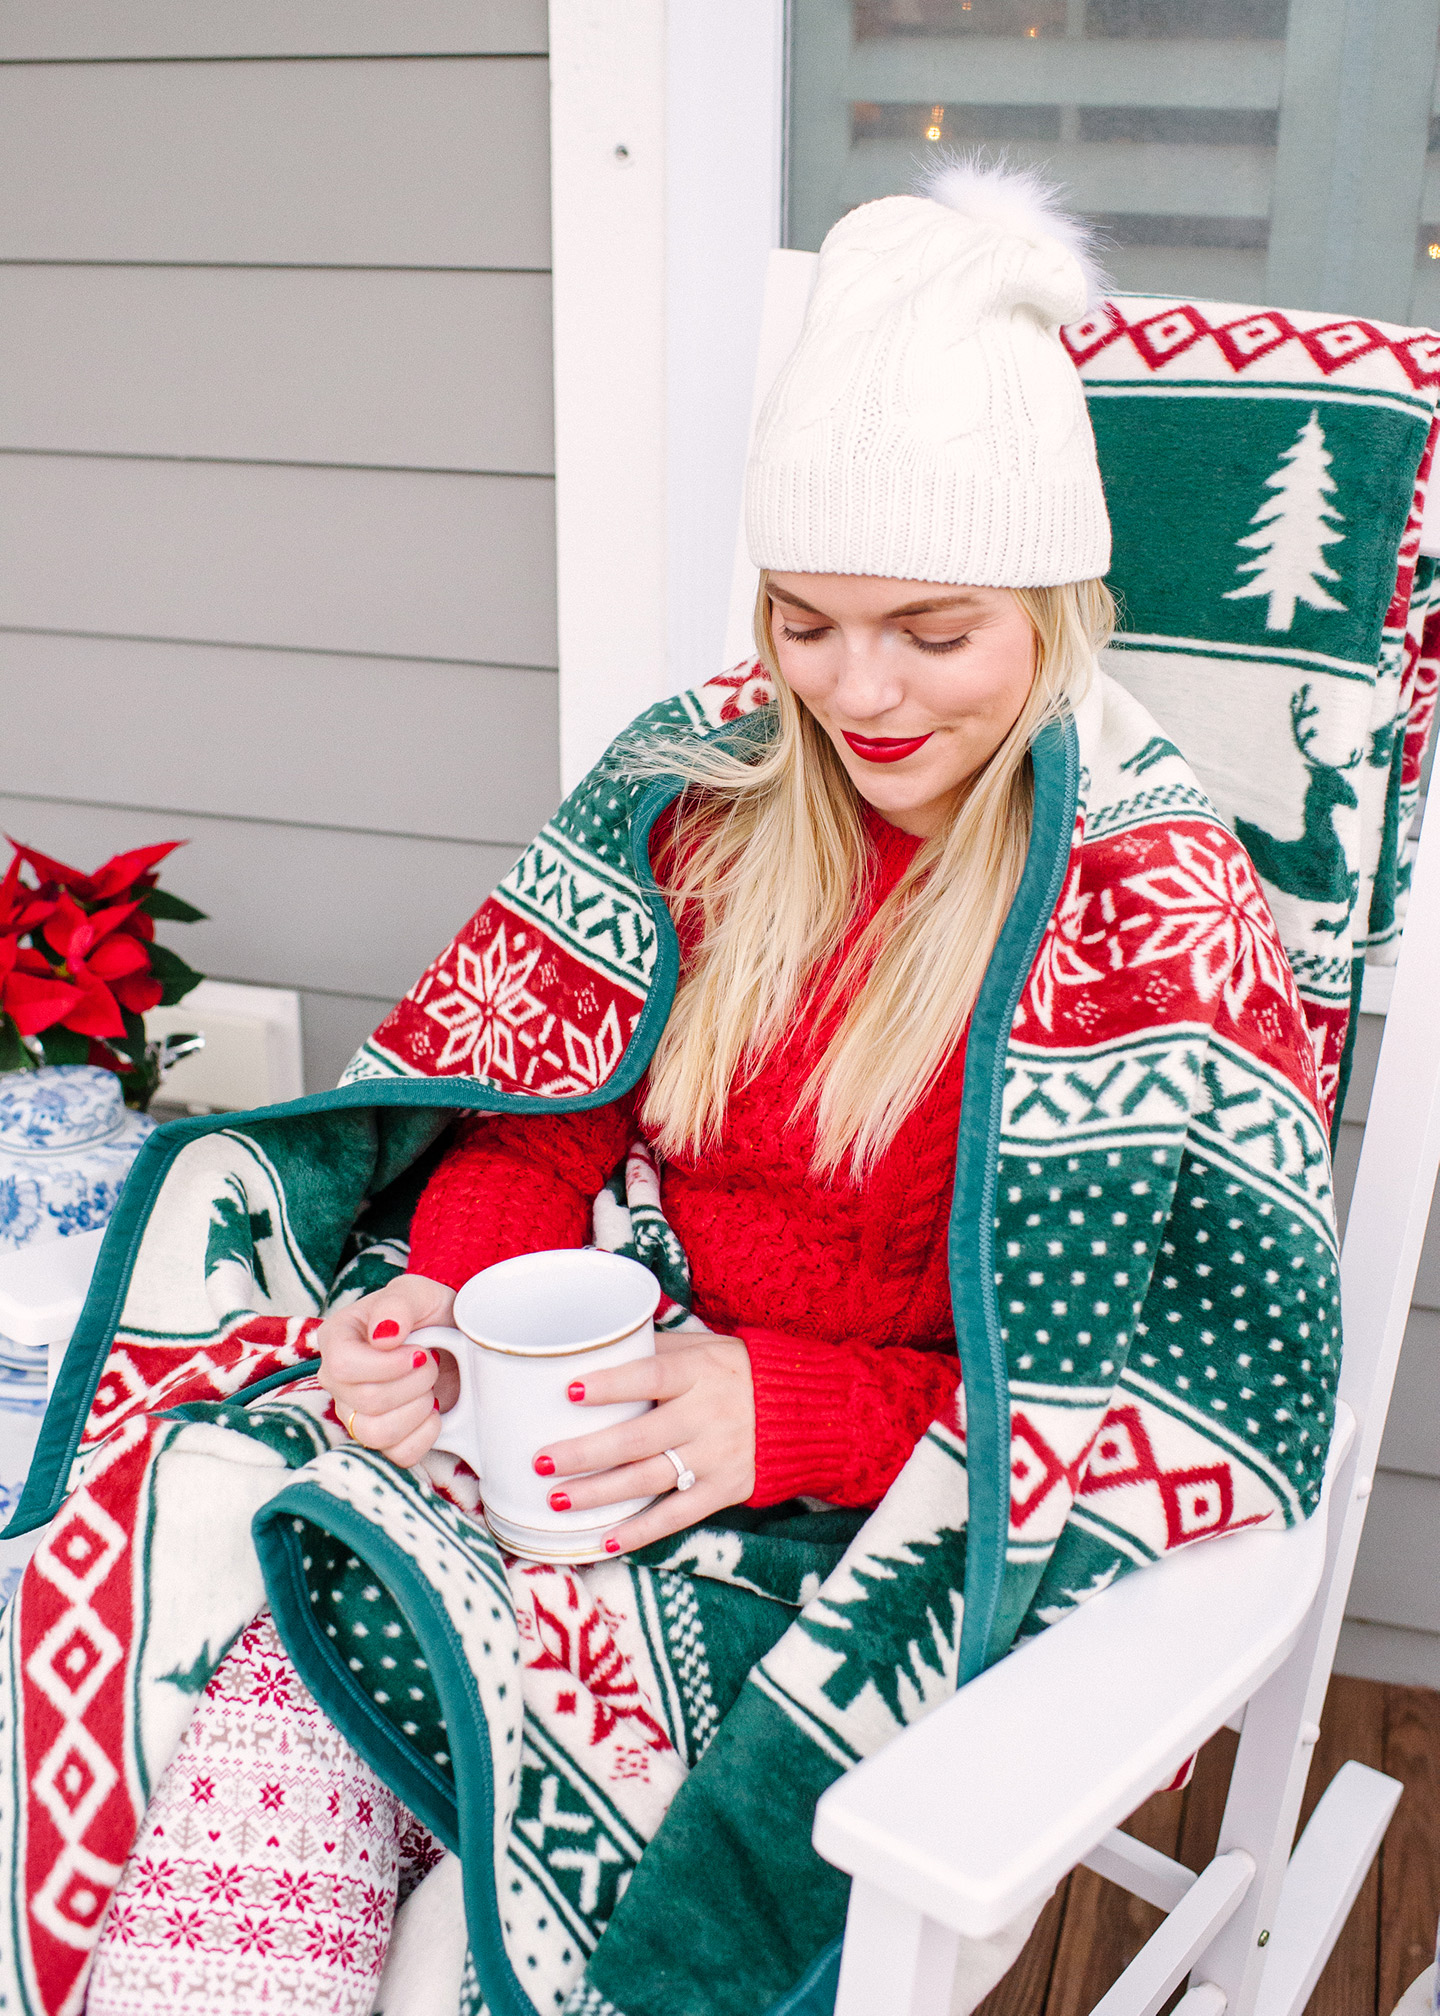 ChappyWrap Holiday Blankies to Love